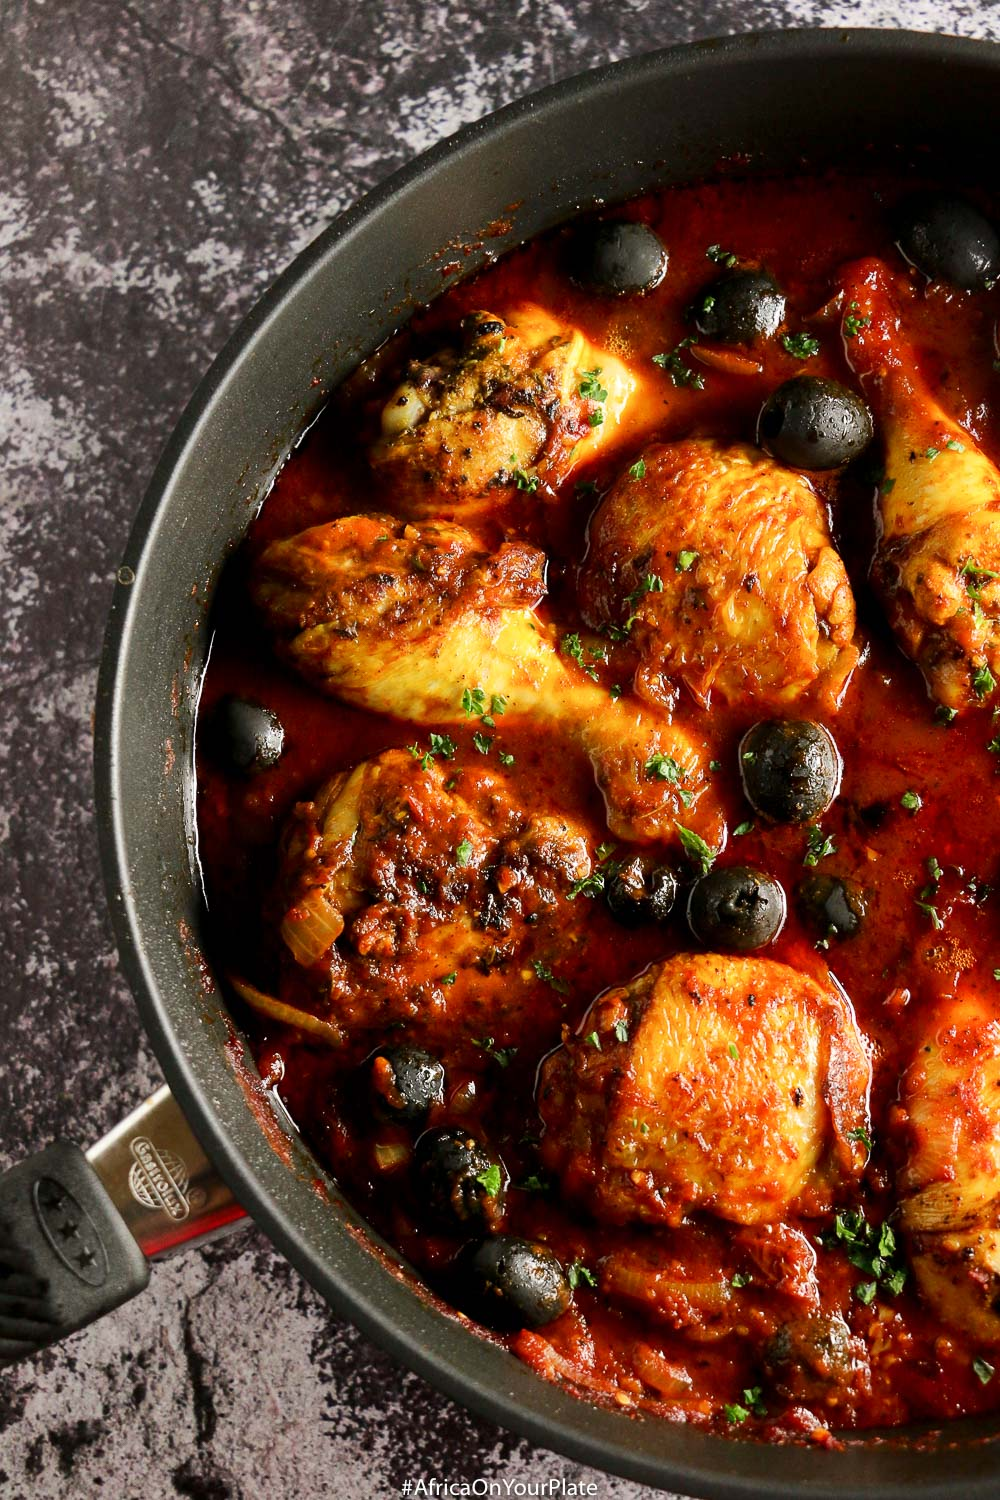 This Moroccan chicken stew is intensely flavoursome and easy to prepare. It is nutty and aromatic, thanks to dukkah, a basic component of many North African meat, fish or vegetable dishes.